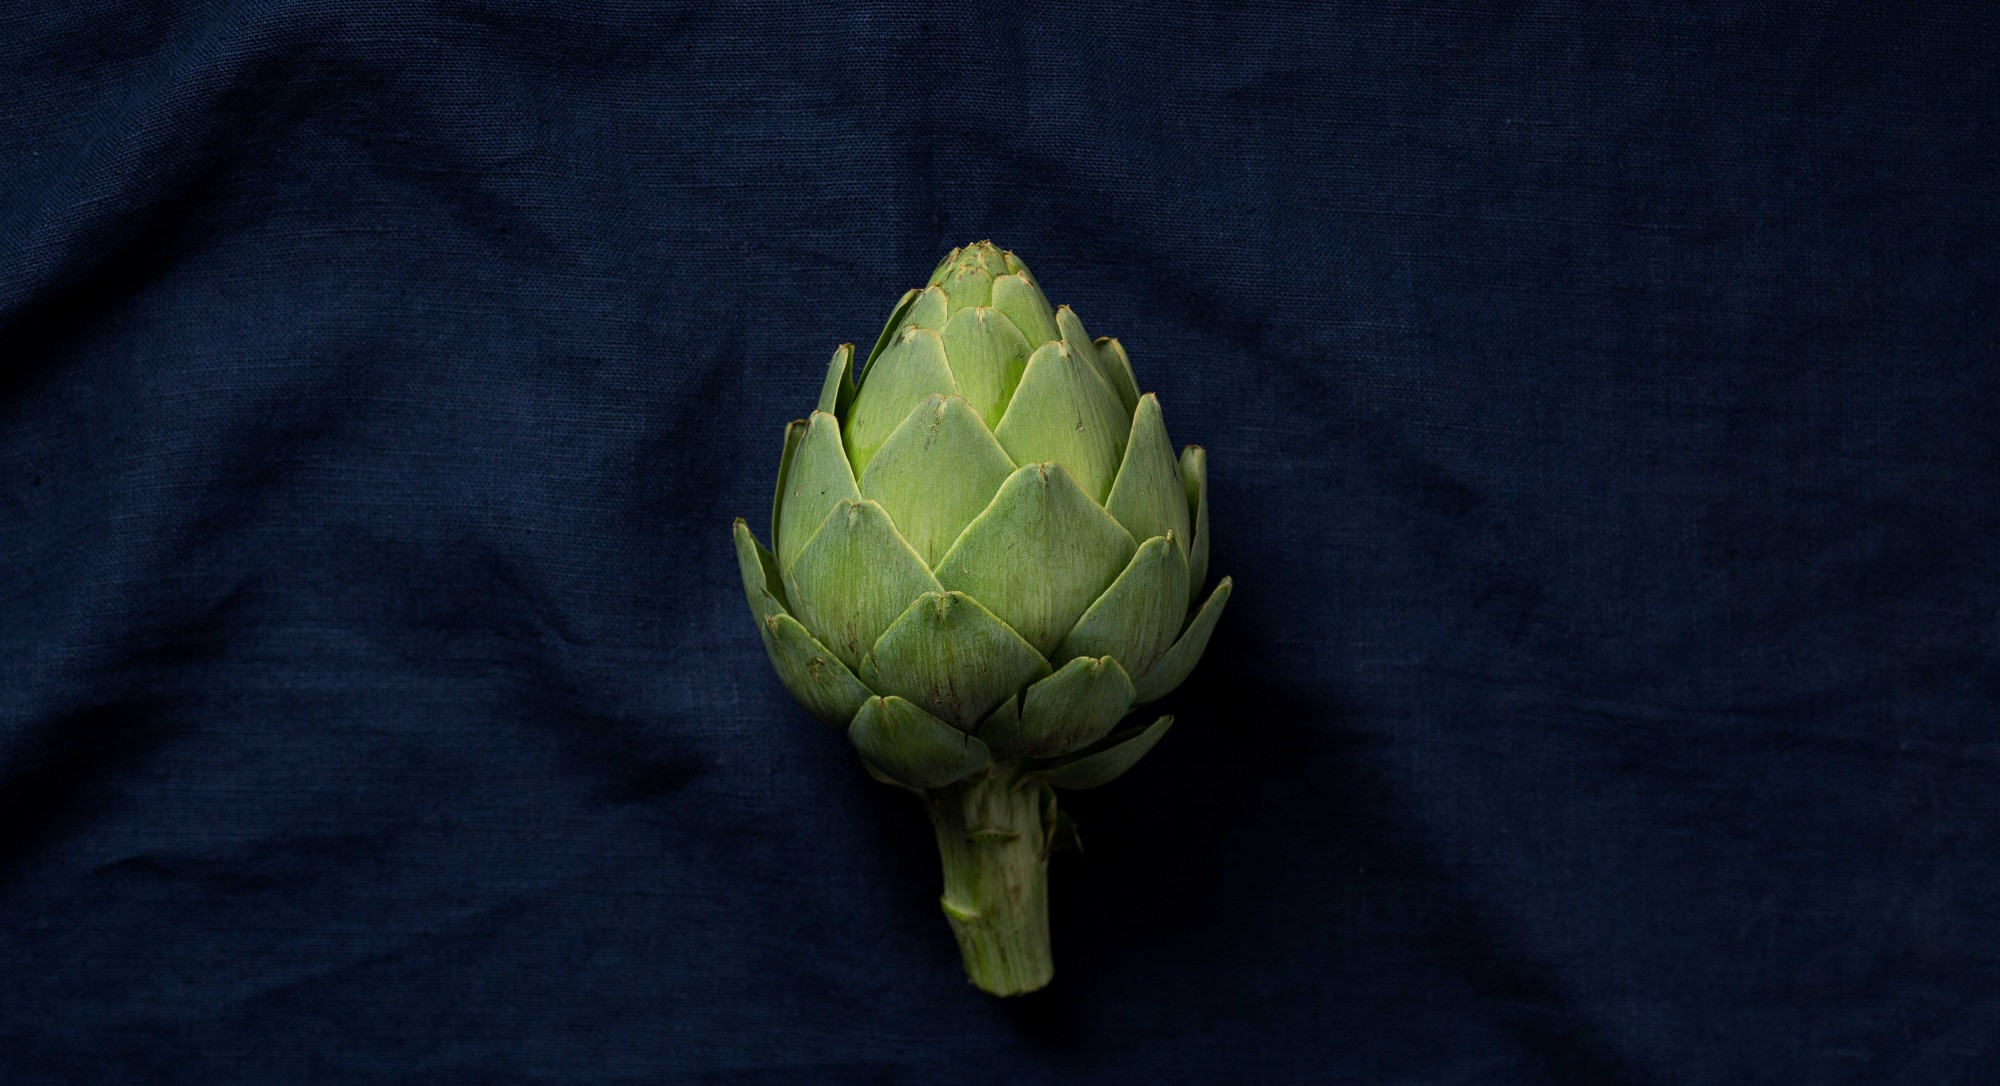 How to Cook and Eat a Whole Artichoke (Petals, Heart, and All)